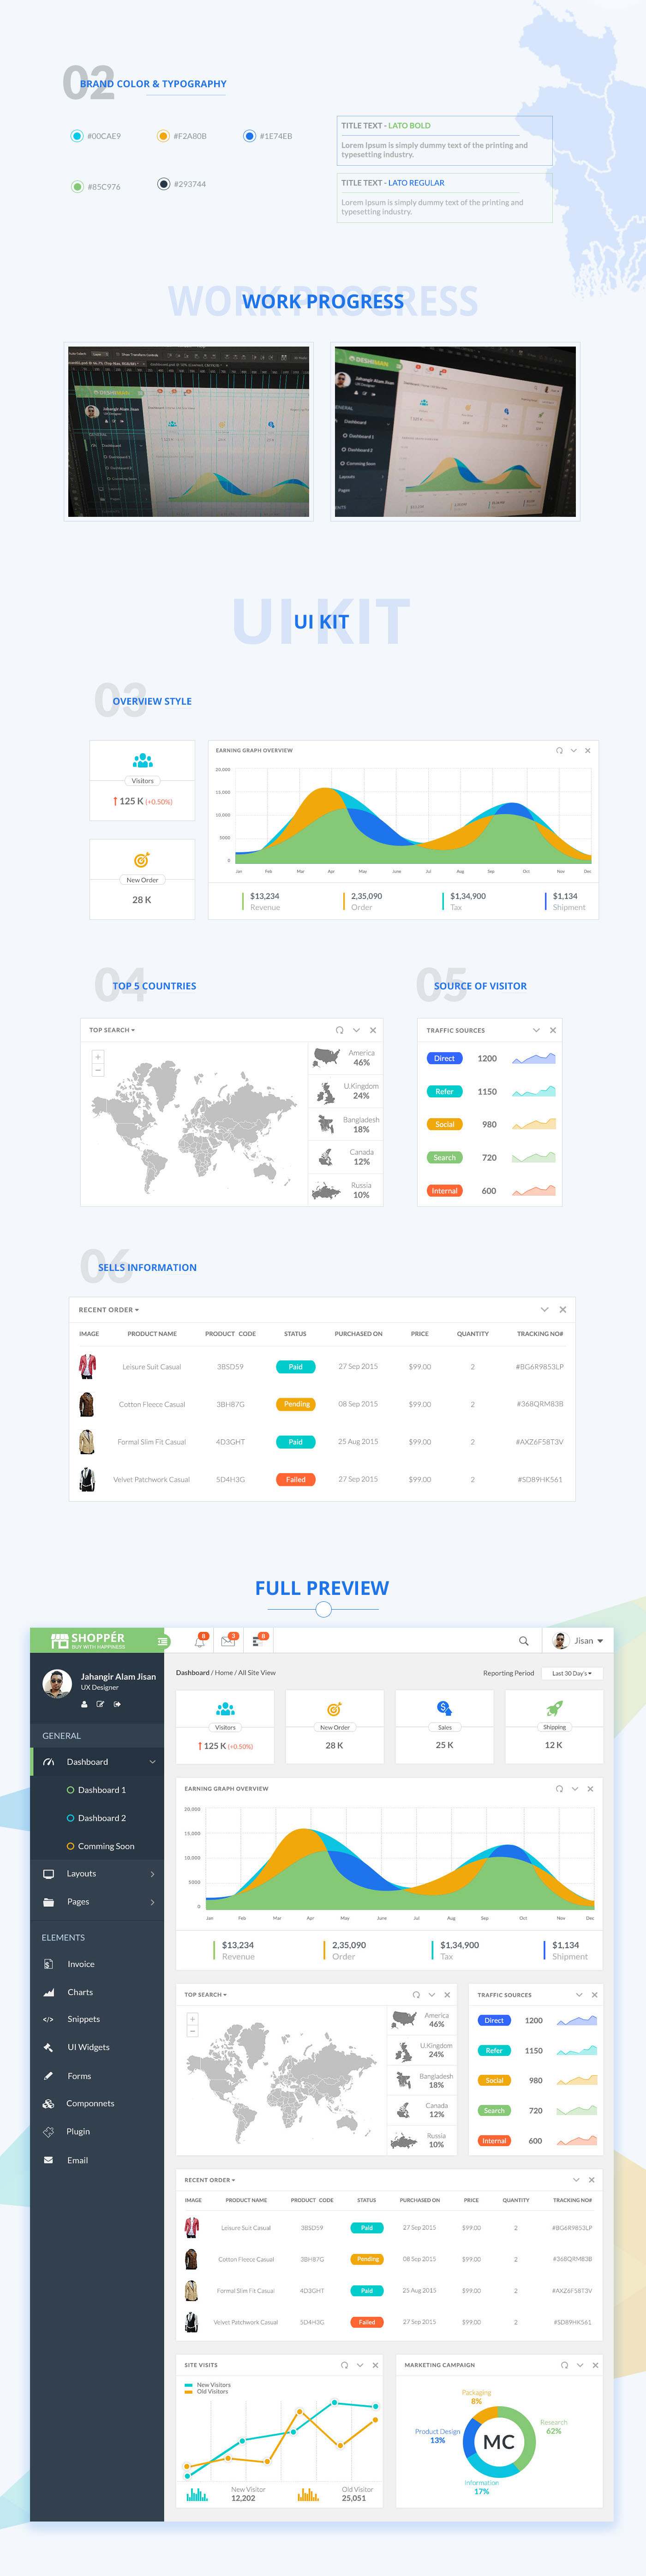 Ecommerce dashboard UI ux interactiondesign app Shopping flatdesign freebie psd